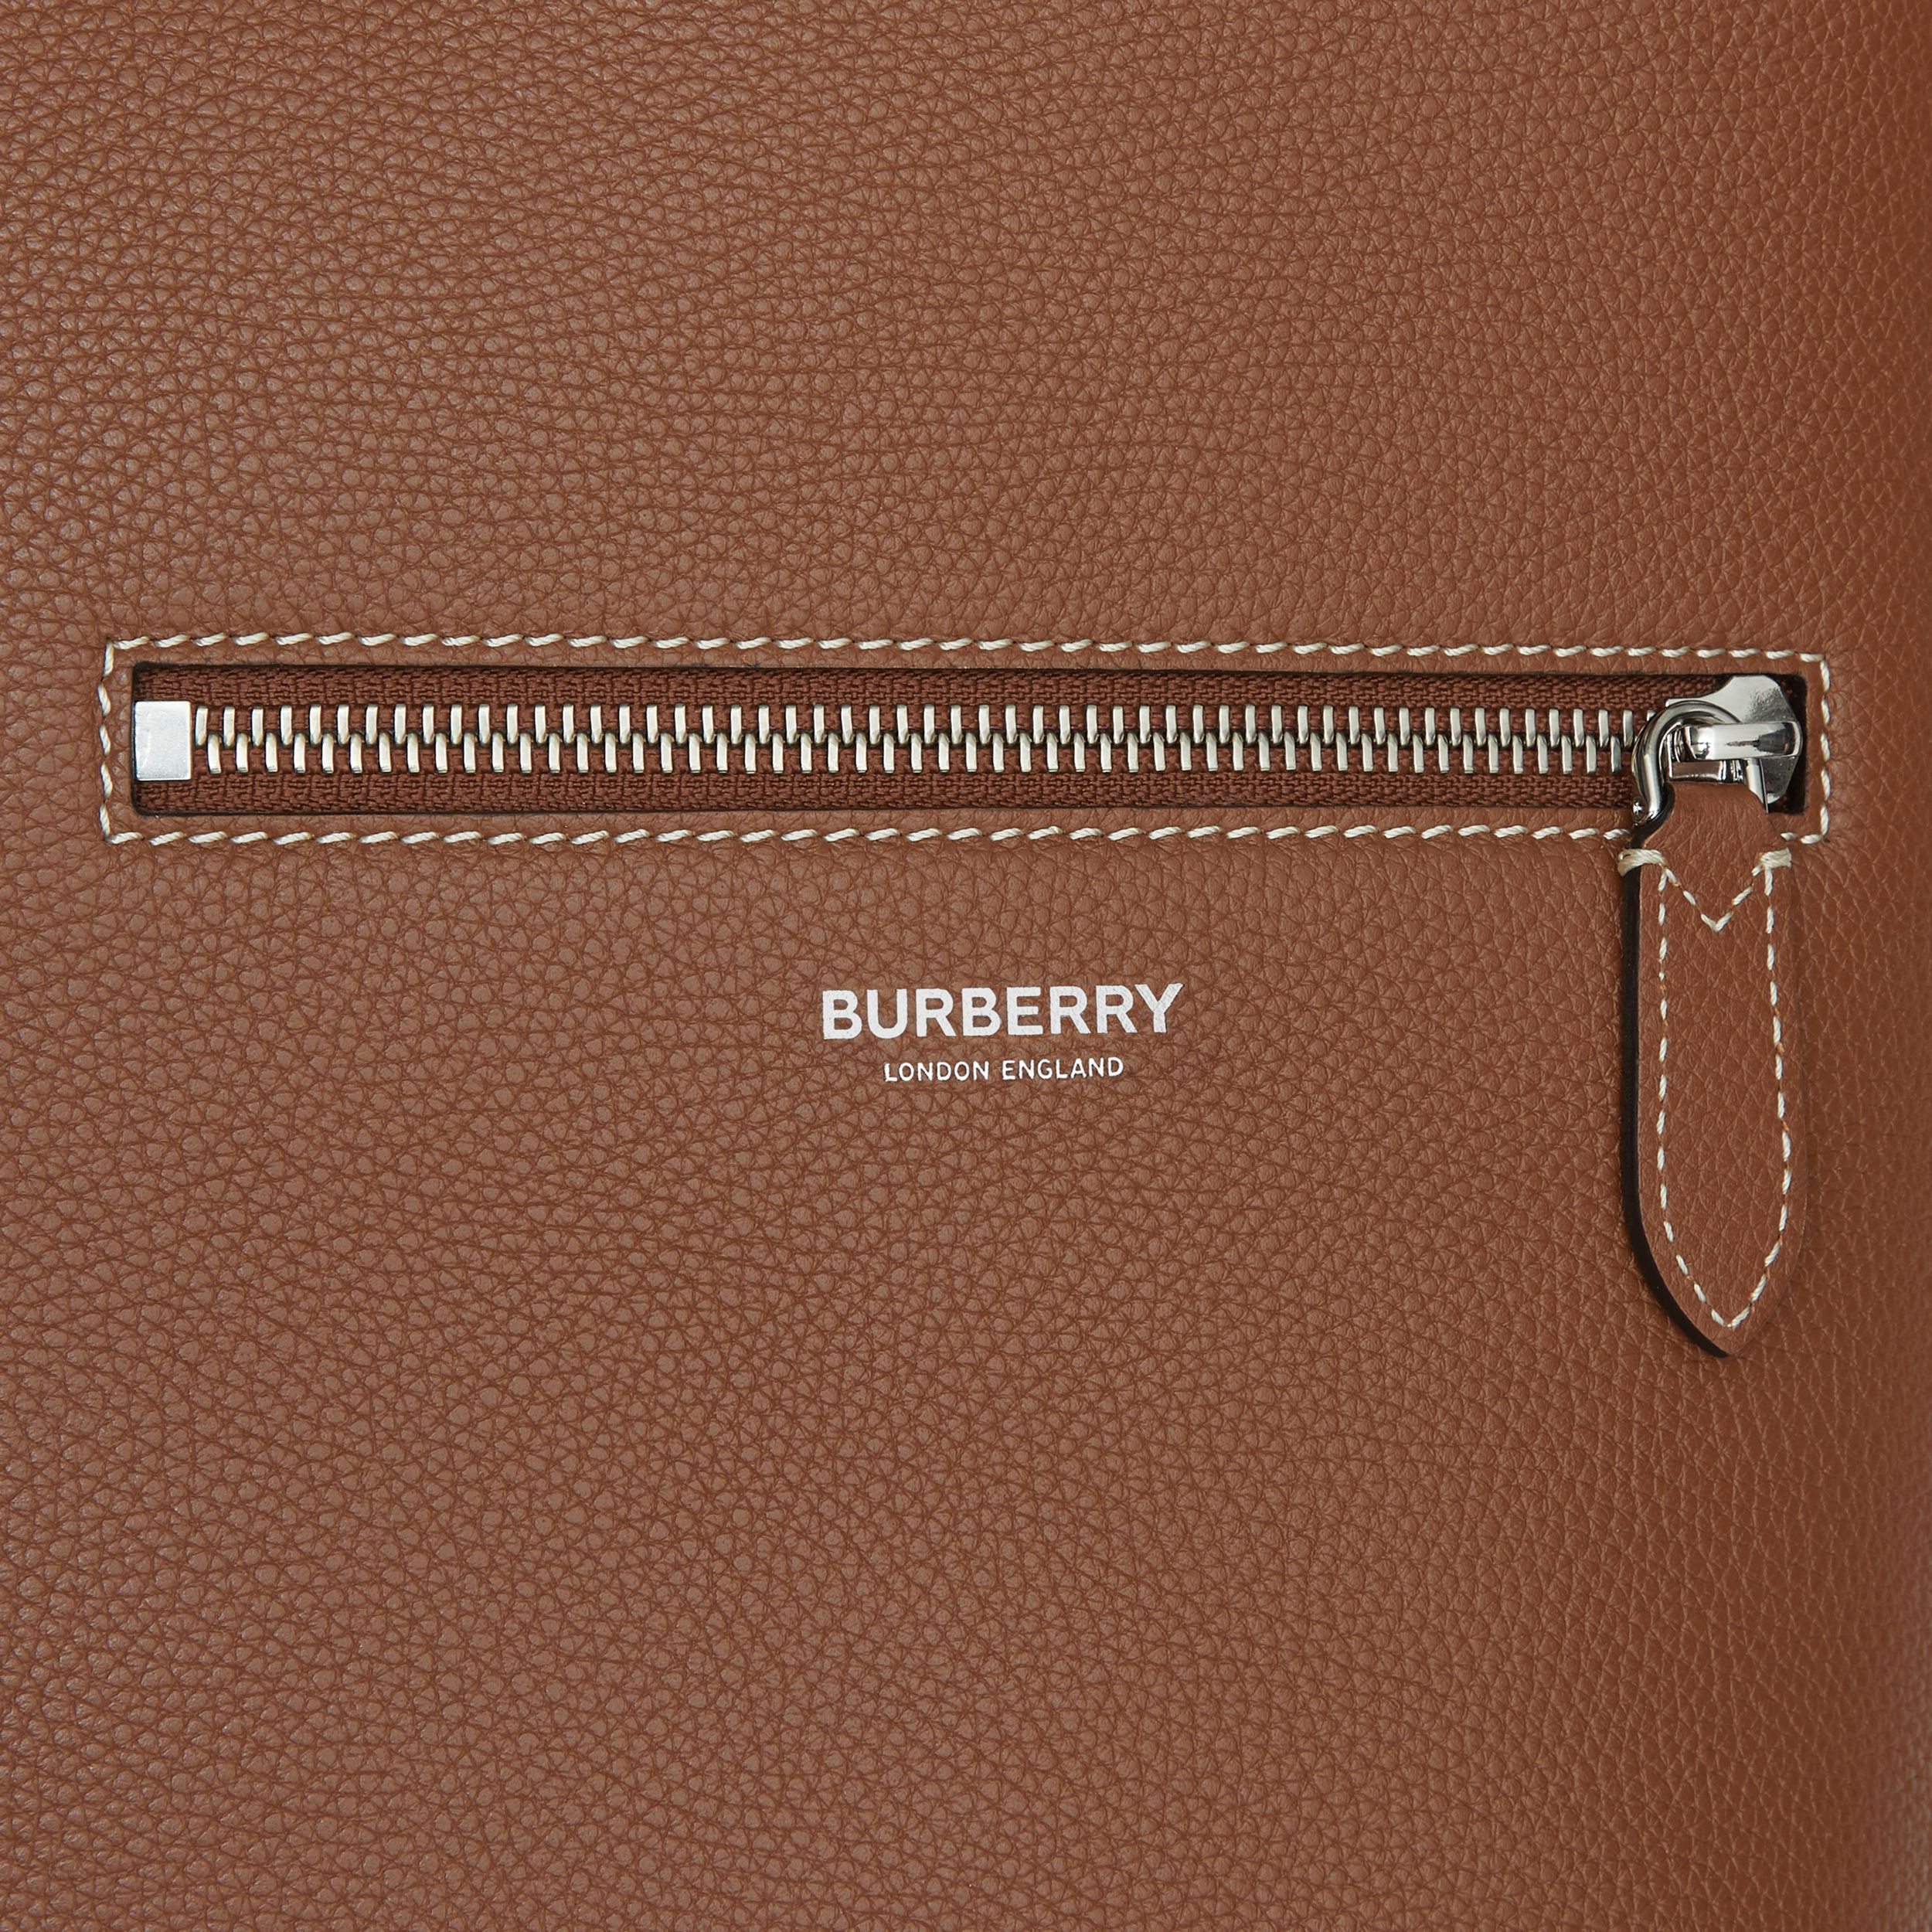 Grainy Leather Tote in Tan | Burberry - 2